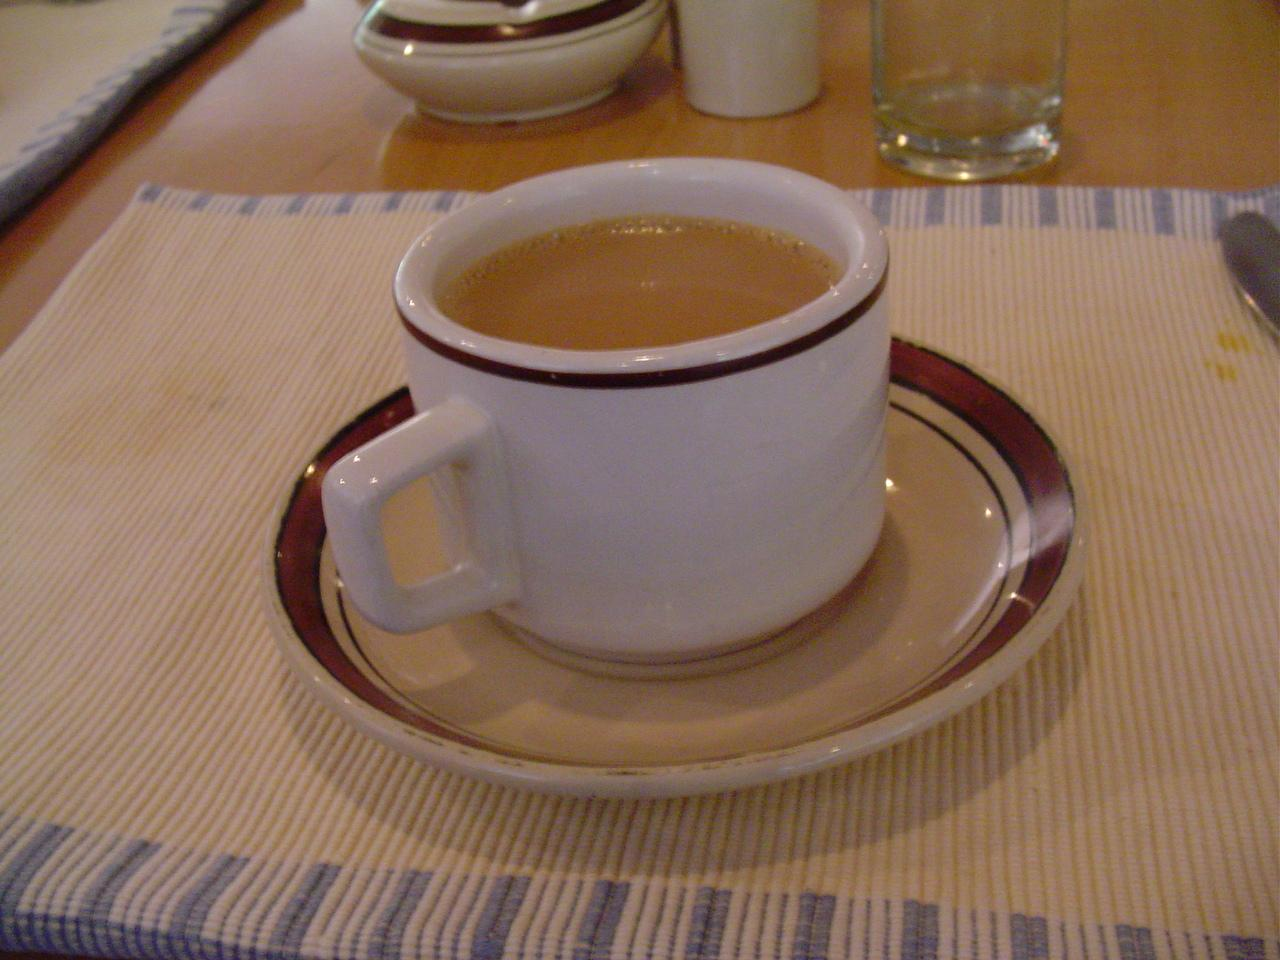 File:A cup of chai.JPG - Wikimedia Commons